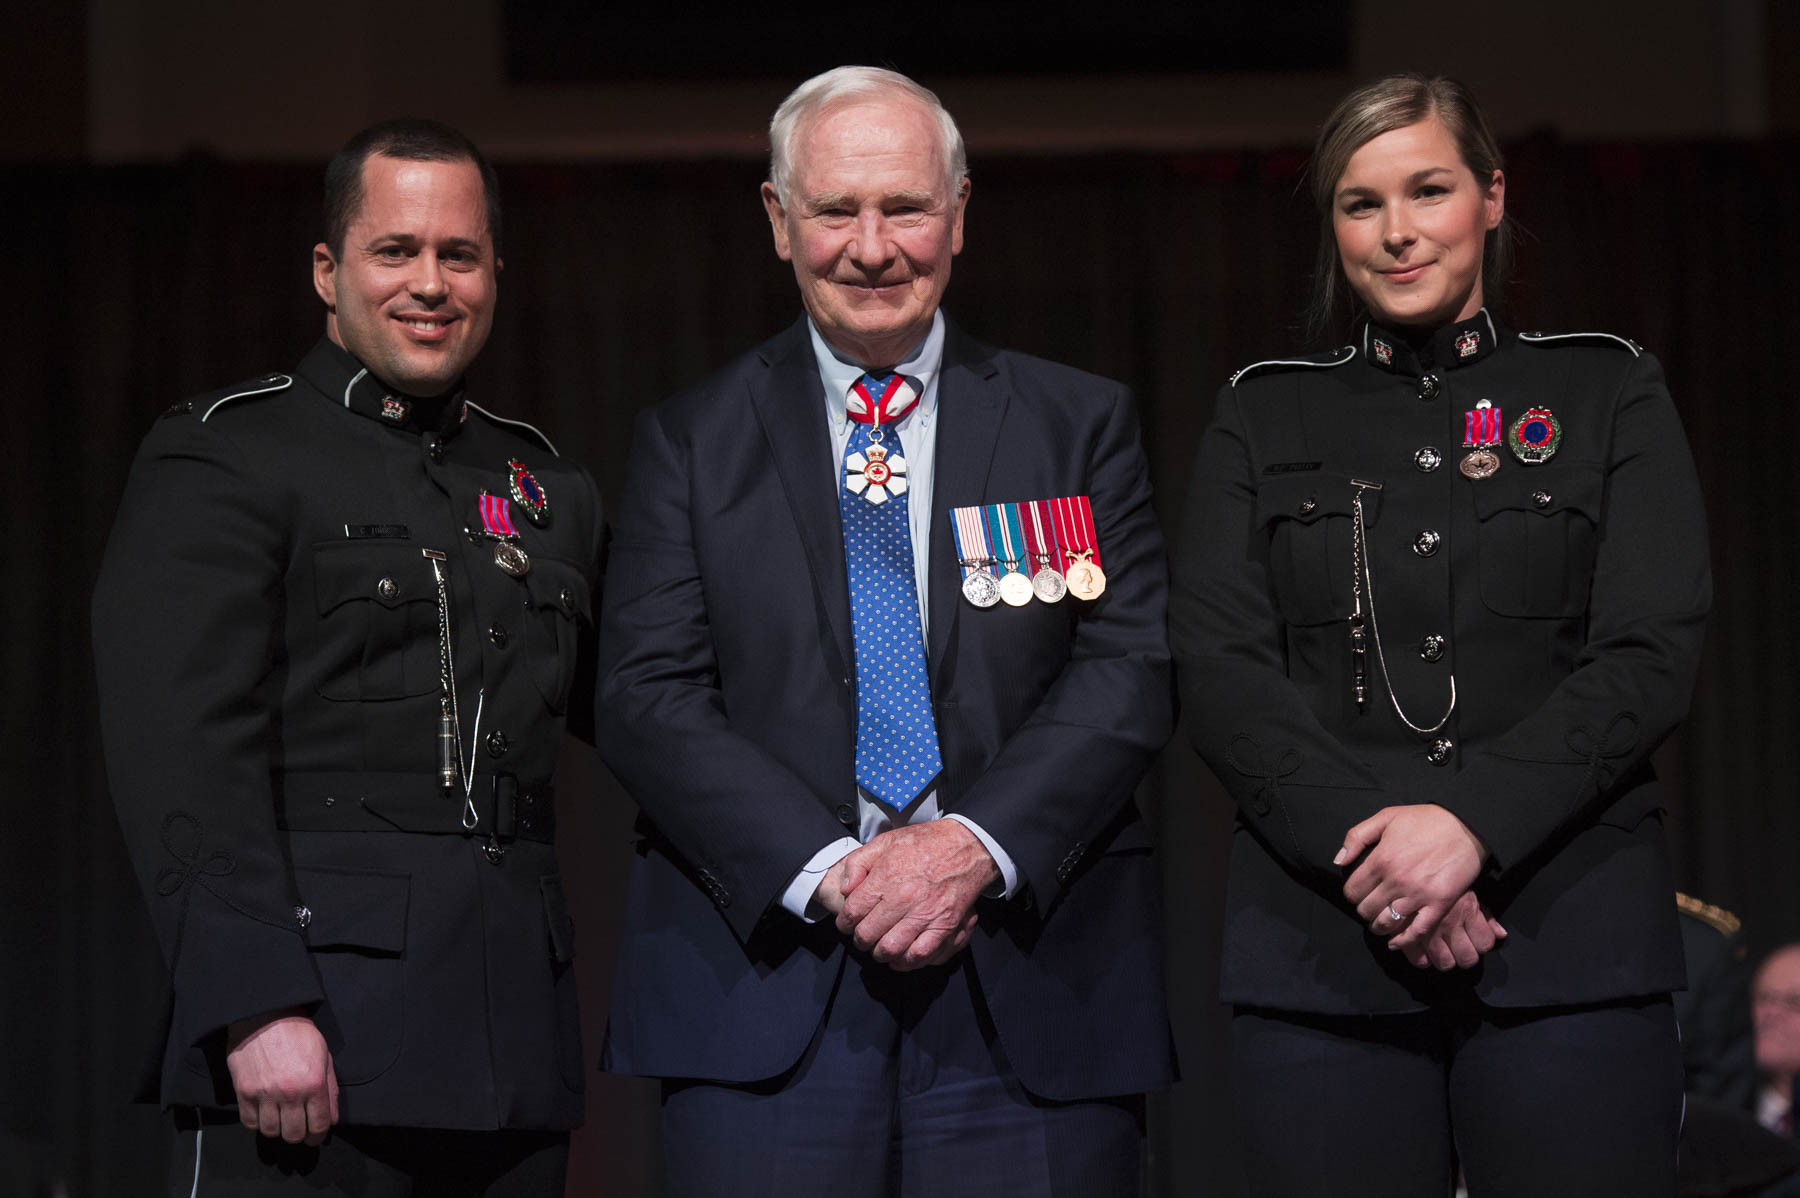 His Excellency presented the Medal of Bravery to Constable Stephanie Pelley, M.B. and 